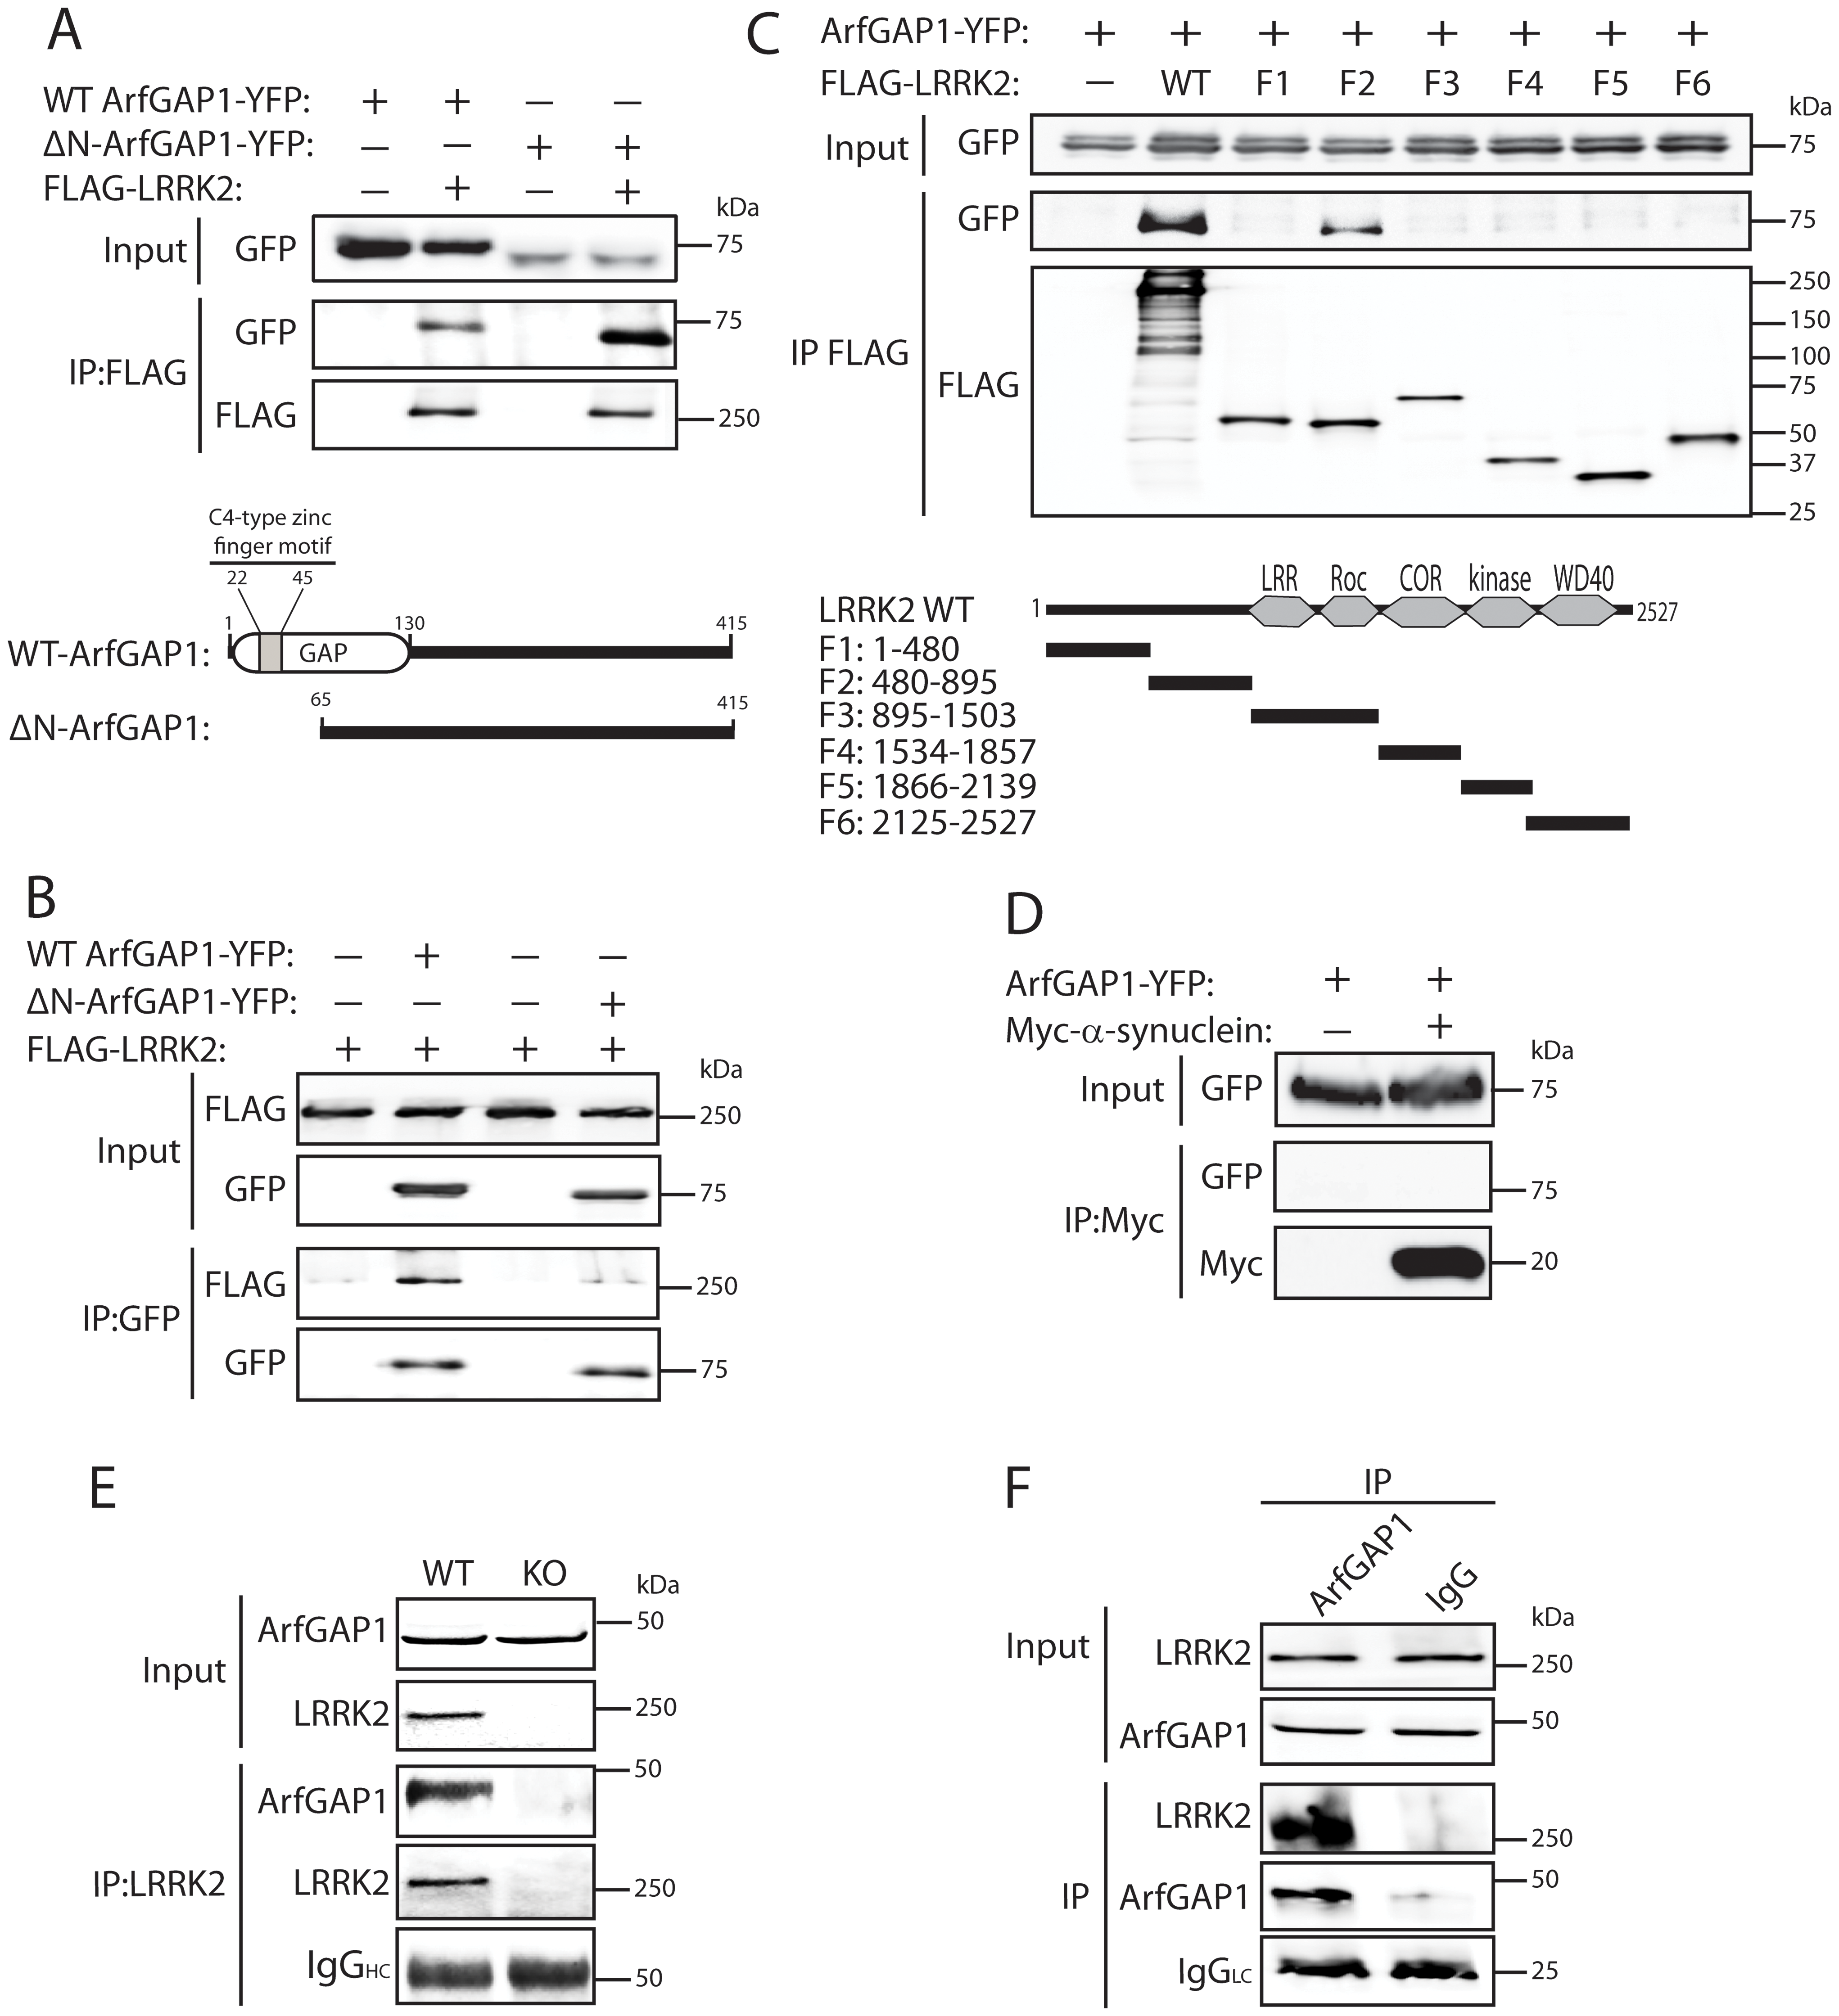 LRRK2 interacts with ArfGAP1 in mammalian cells and <i>in vivo</i>.